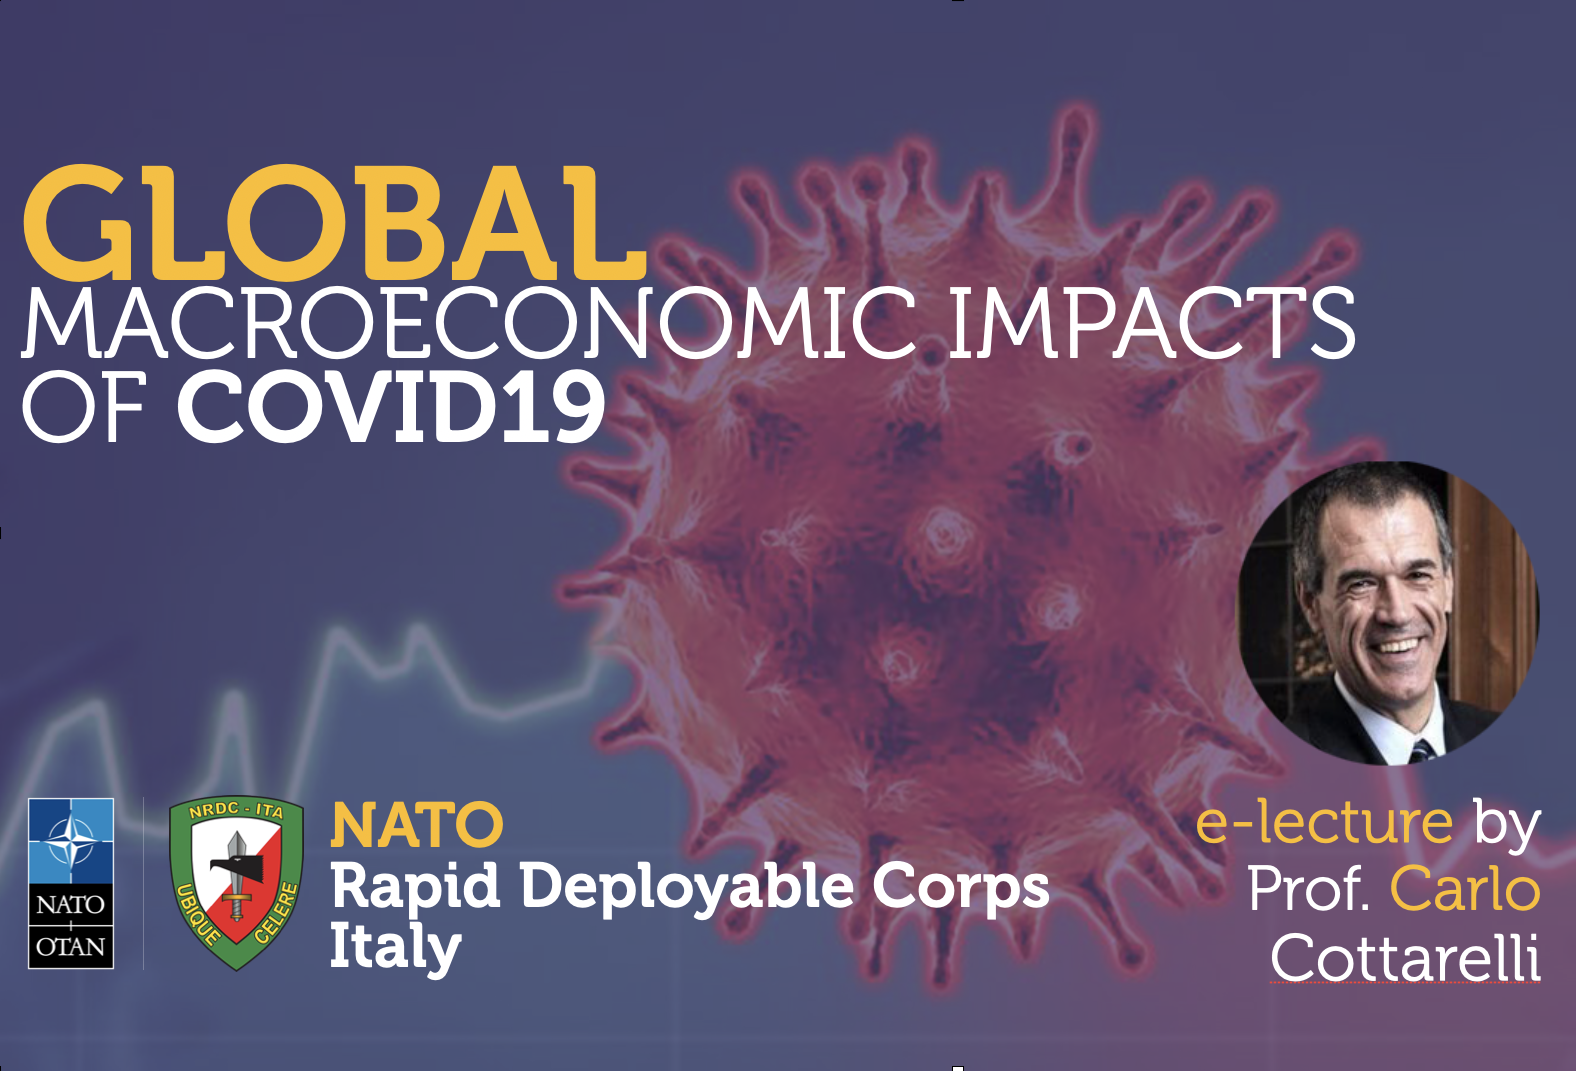 NRDC-ITA considers the impact of COVID-19 on the European economy.